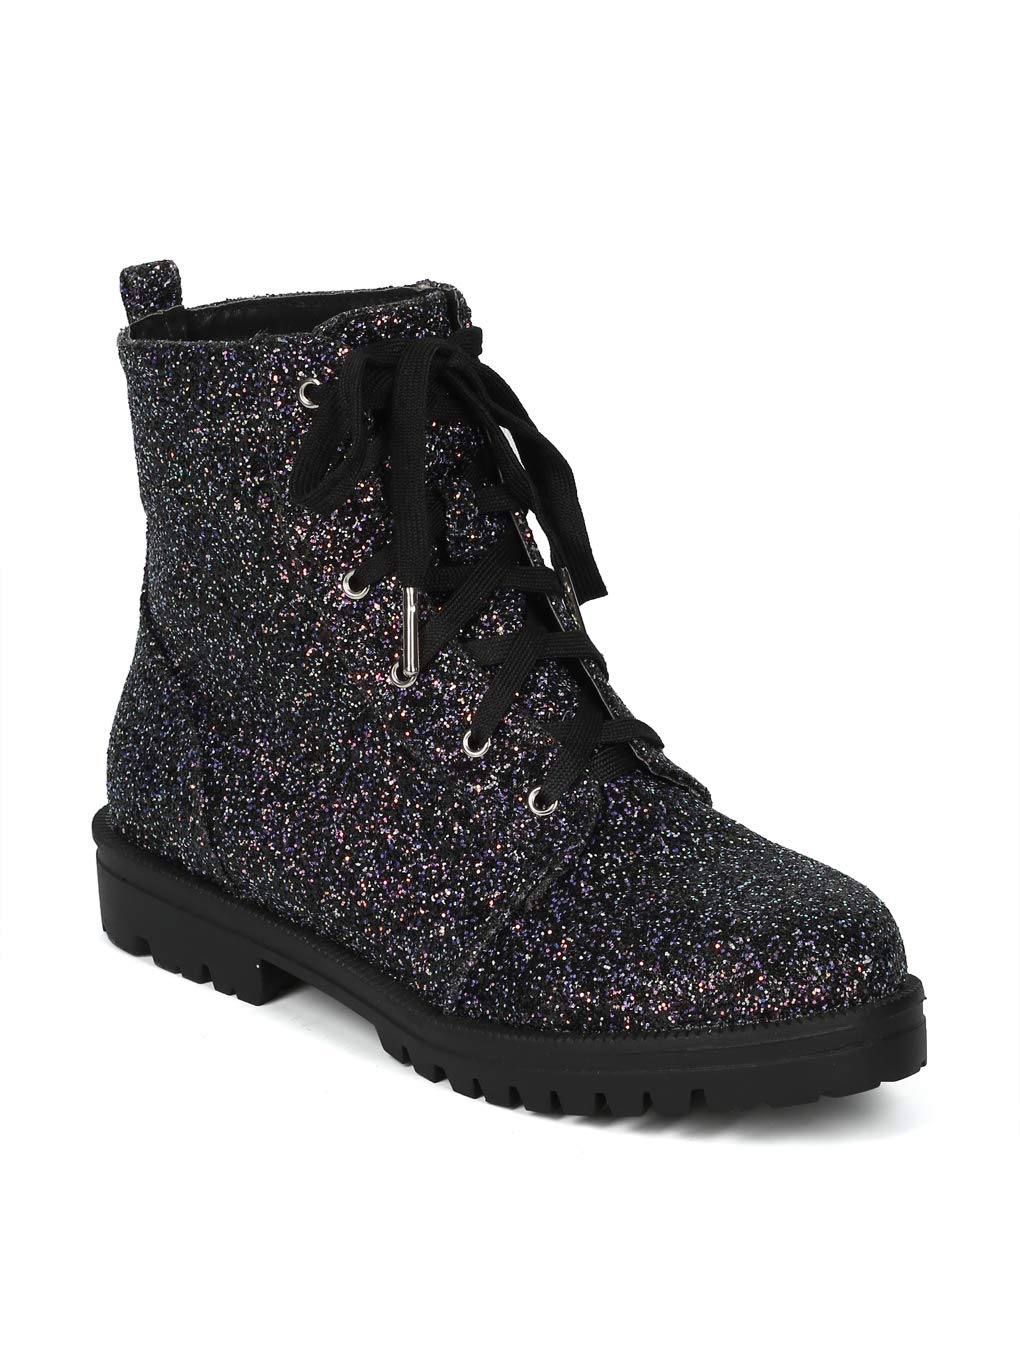 Alrisco Women Glitter Encrusted Lace Up Combat Bootie - IA26 by Cape Robbin Collection - Black (Size: 11)